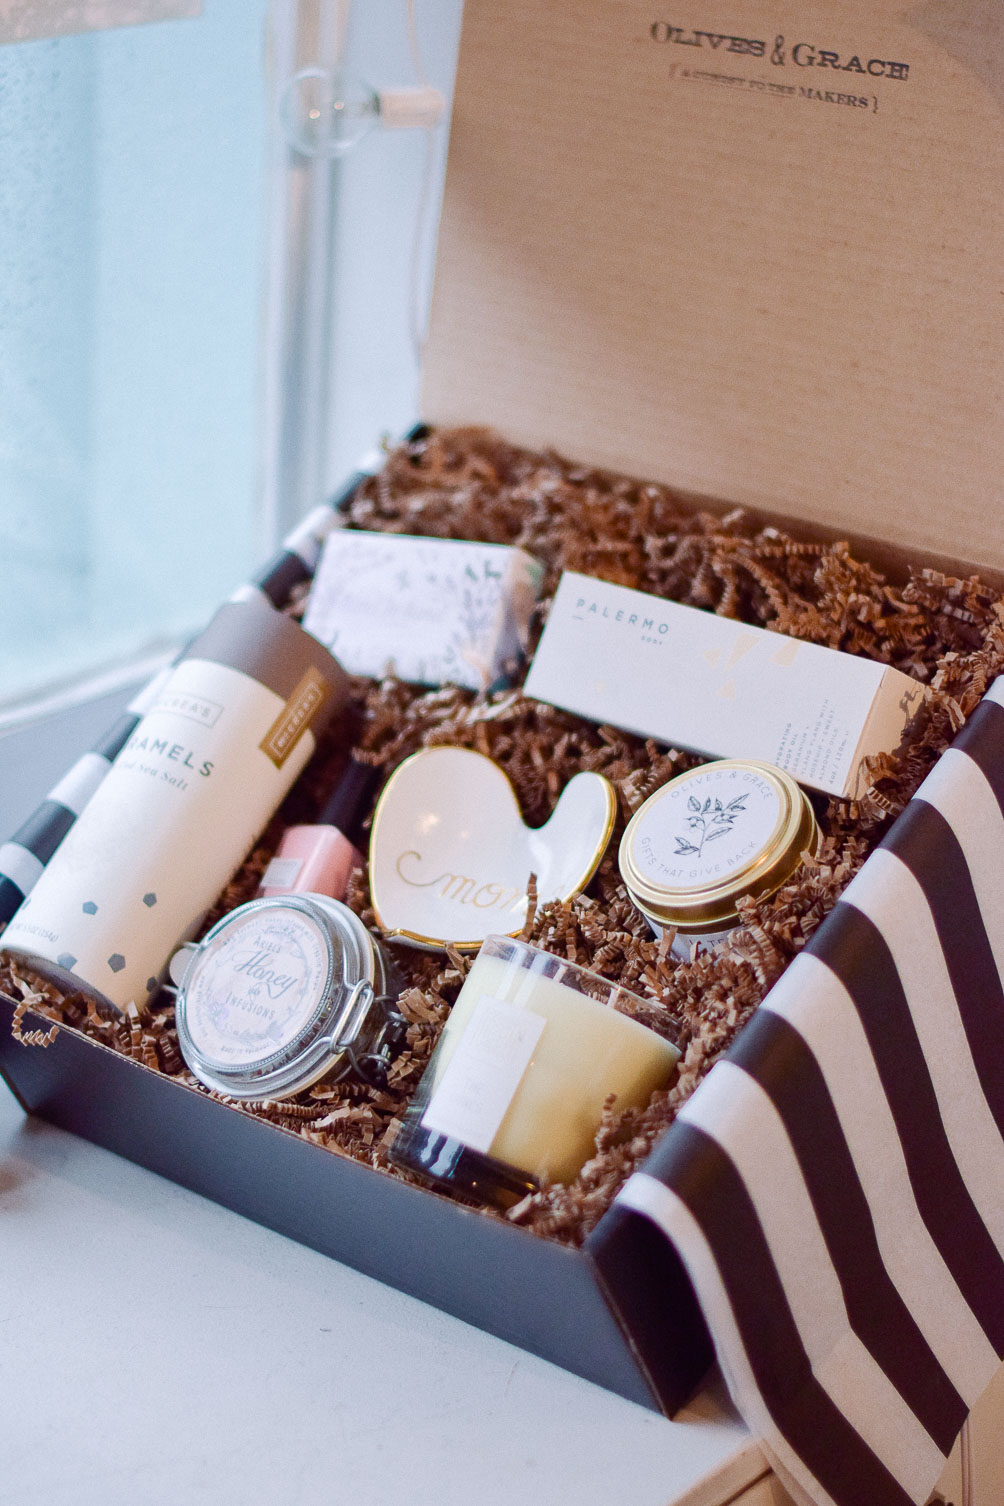 gift box ideas for mother's day - olives & grace-16